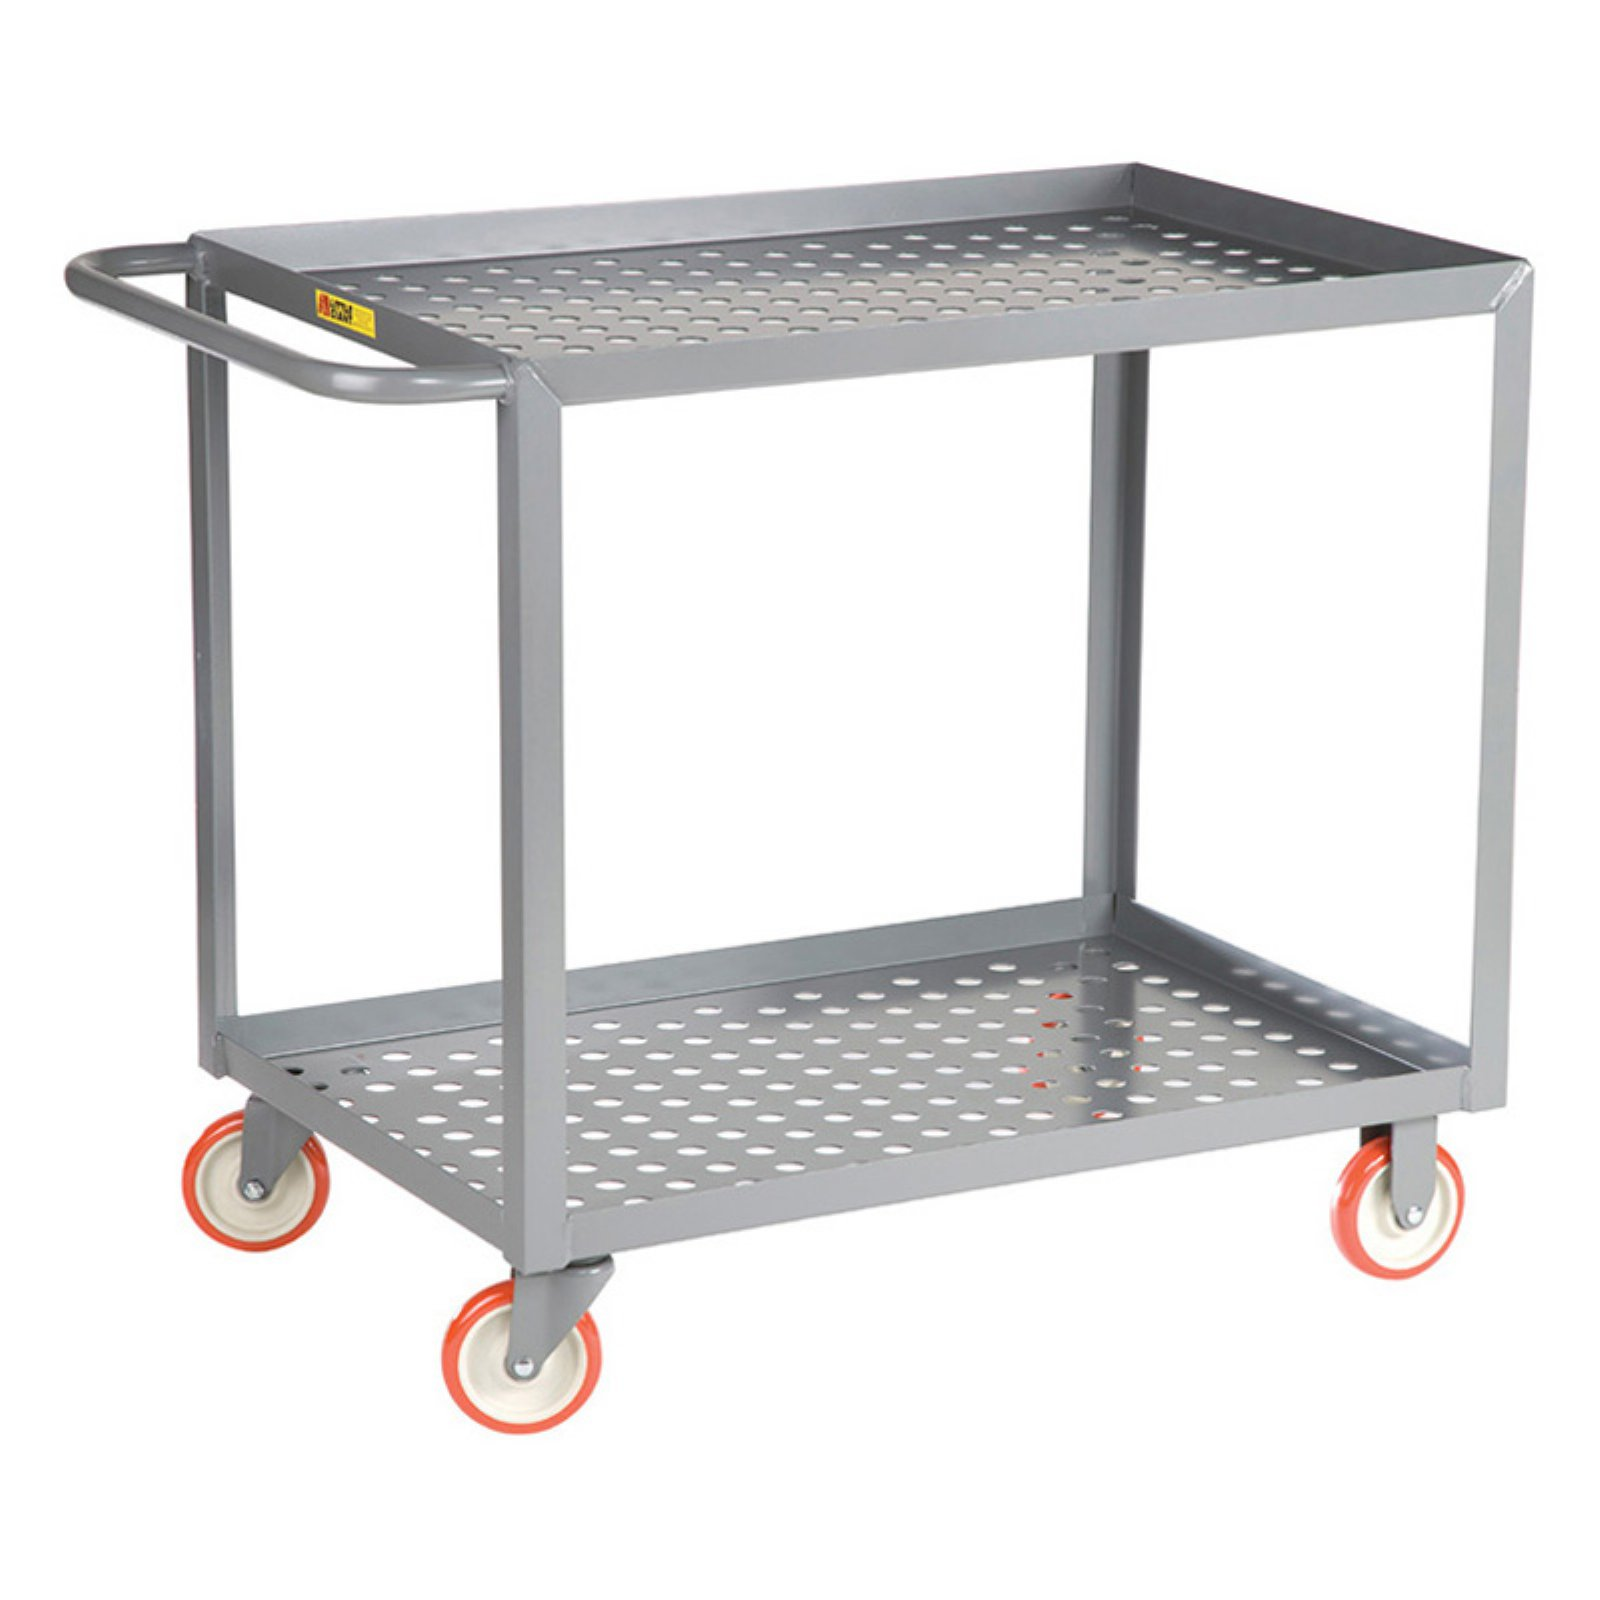 Little Giant Welded Service Cart with Perforated Deck